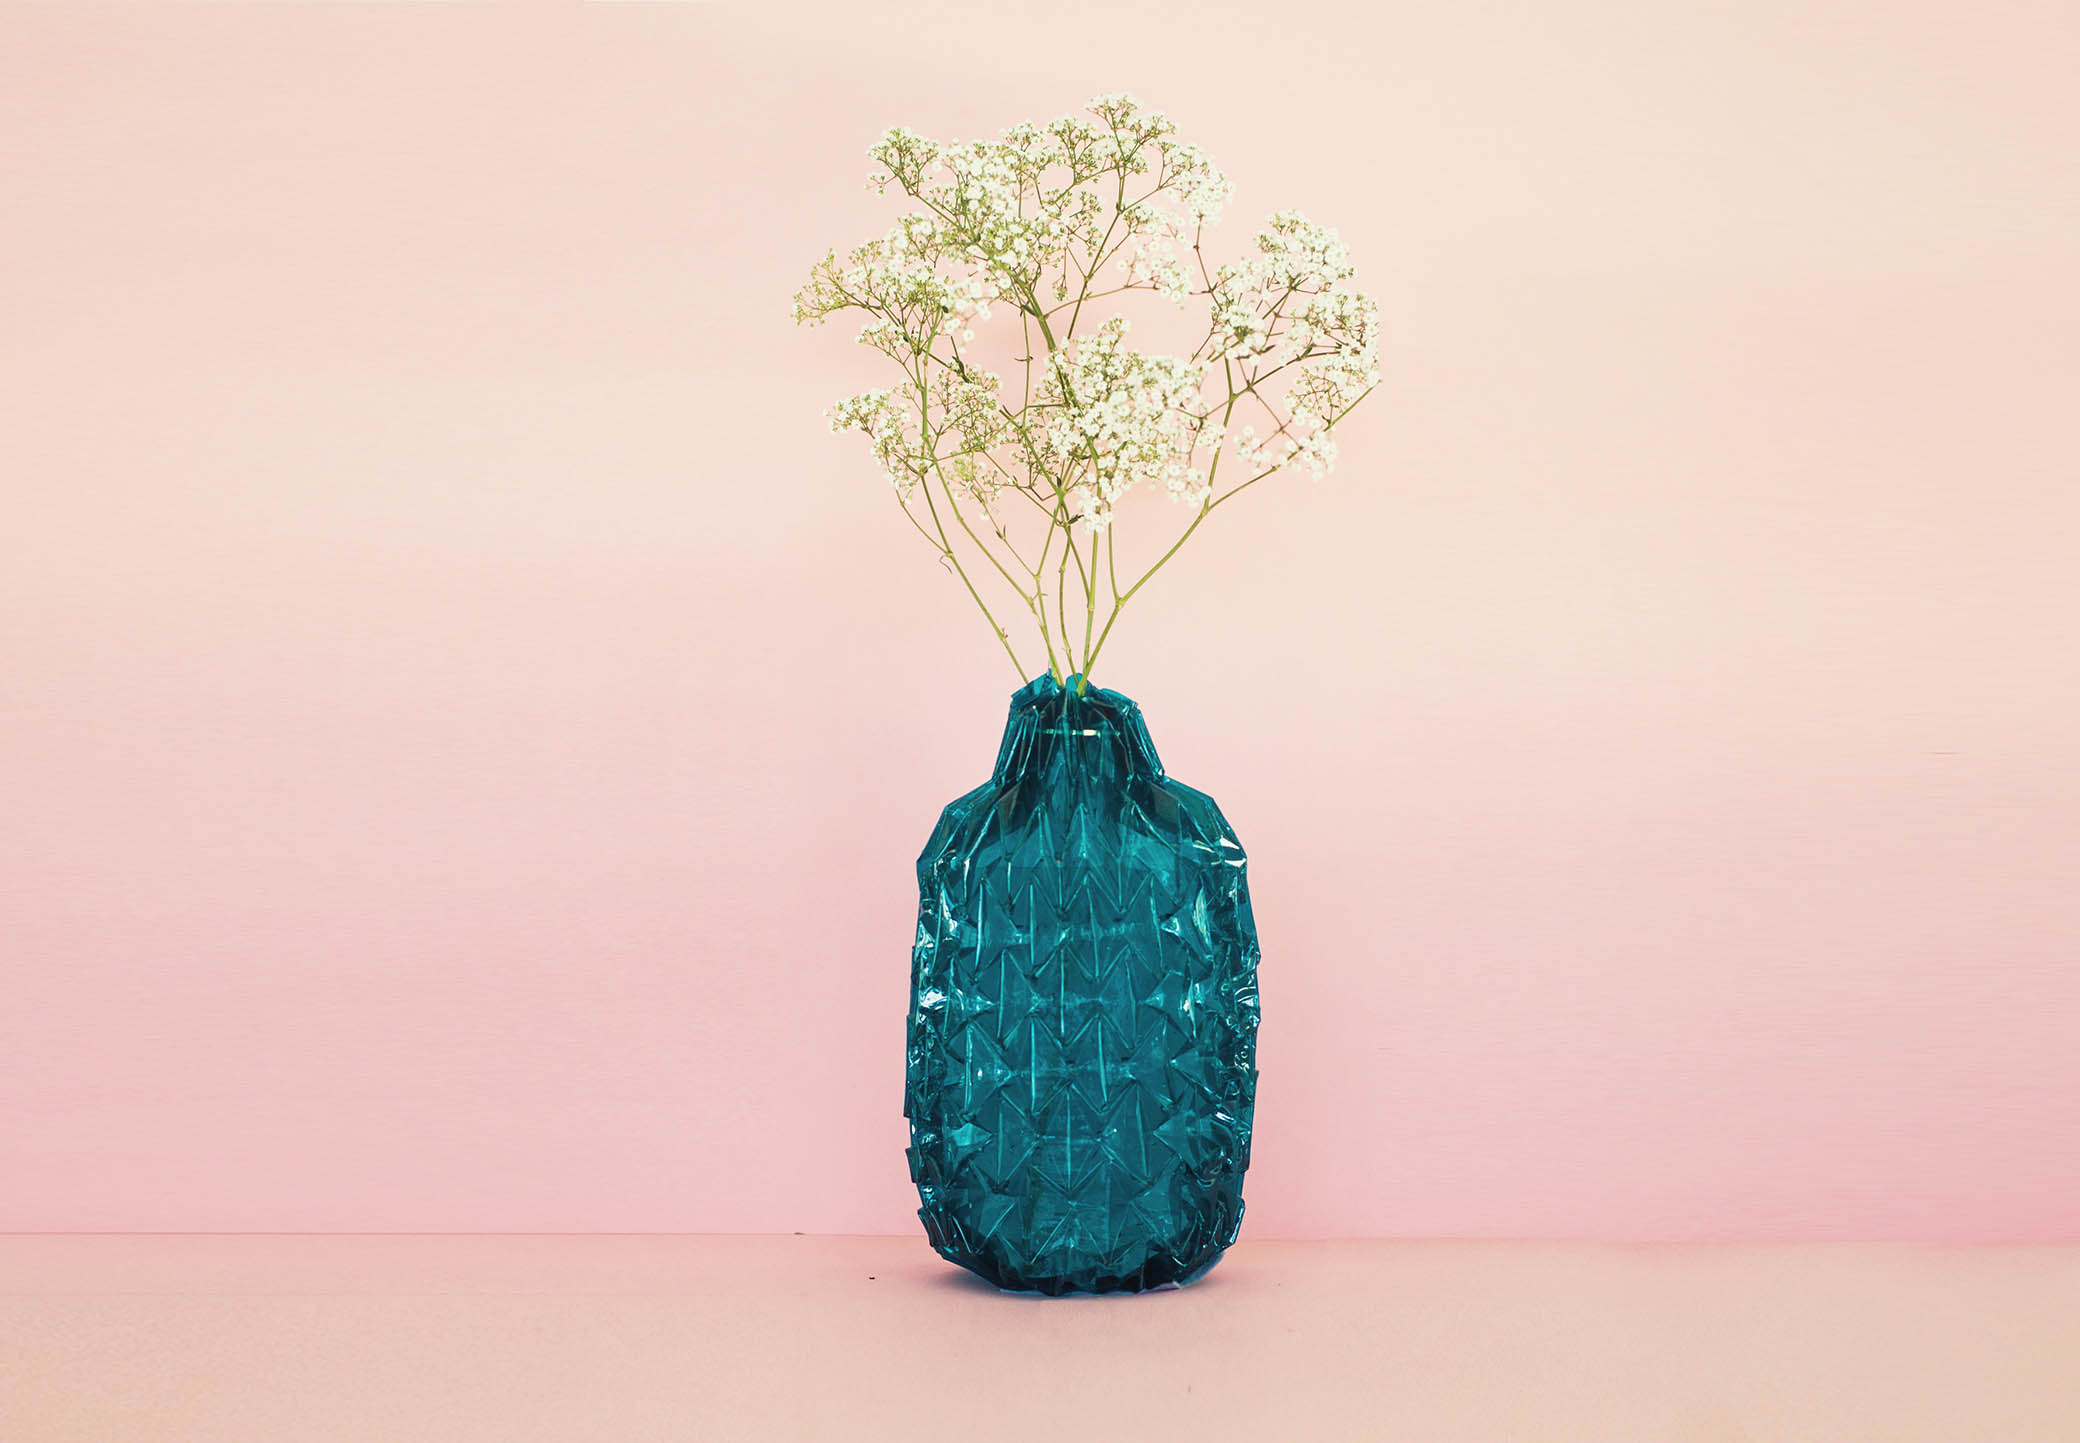 Ocean Blue Vase,  Unfolded Vases,  in glass , by Jule Waibel. This collection of vases can be seen at the London Design Festival!